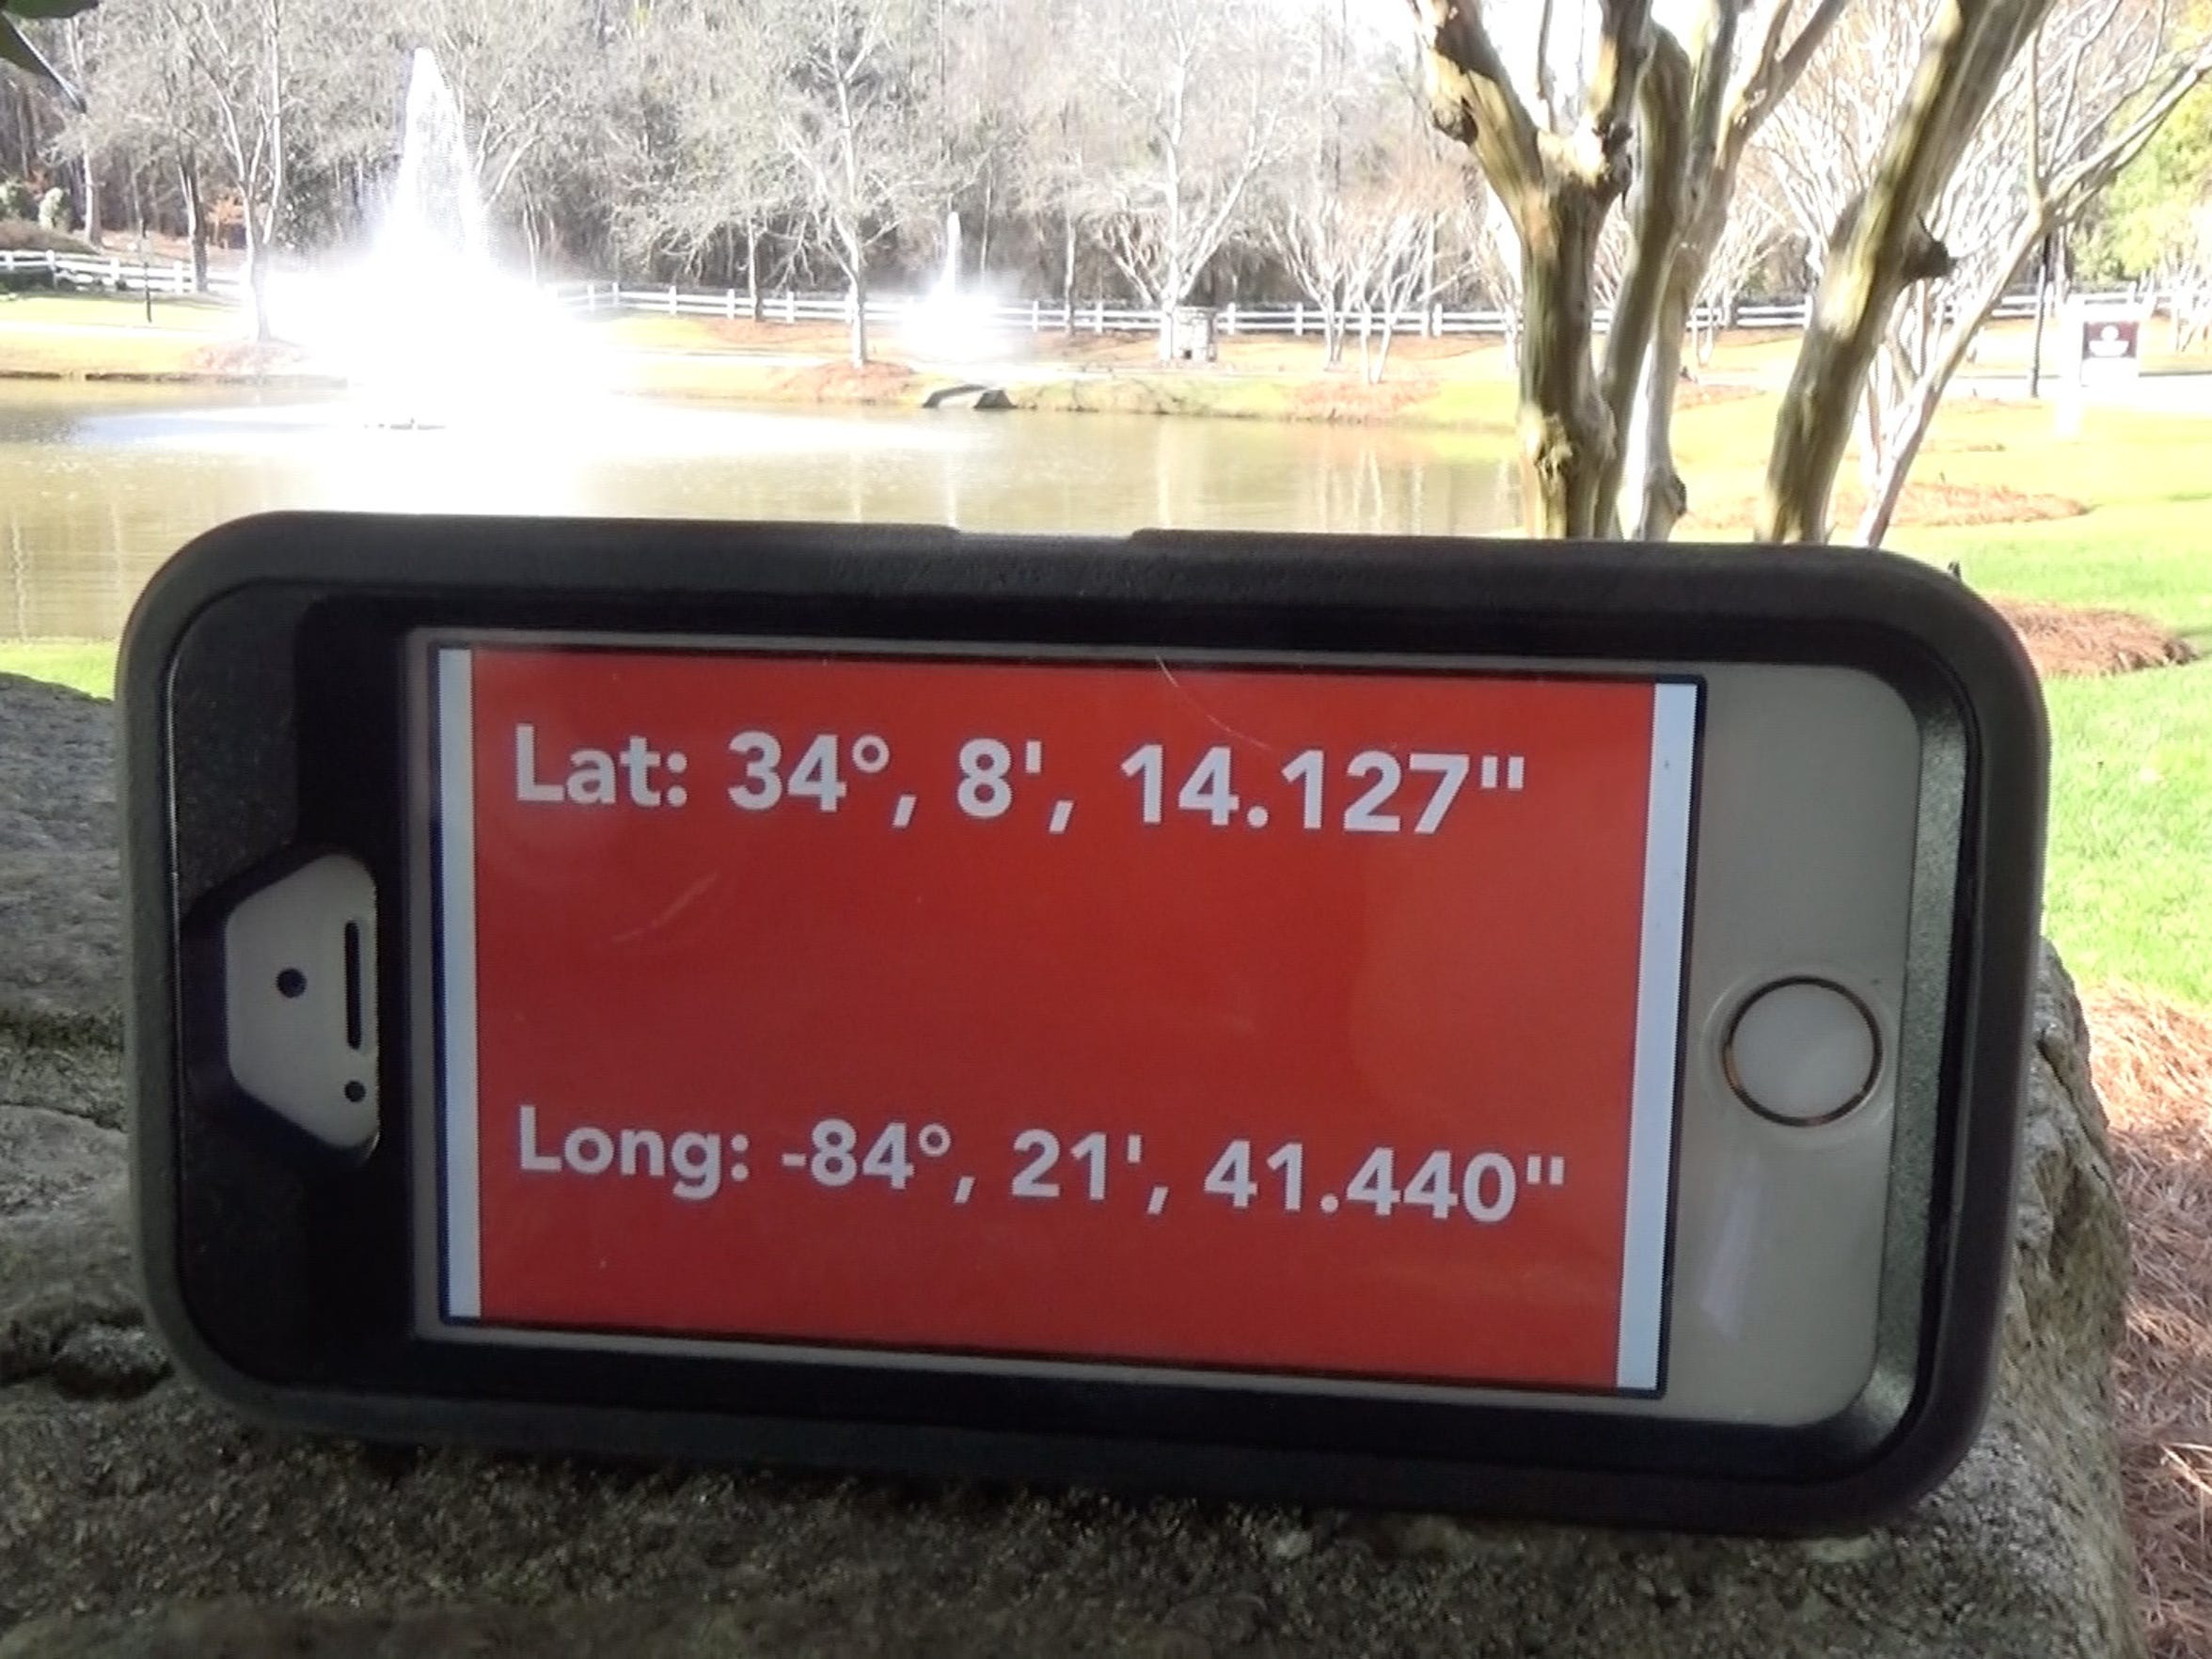 Coordinates of the pond Shanell Anderson's vehicle